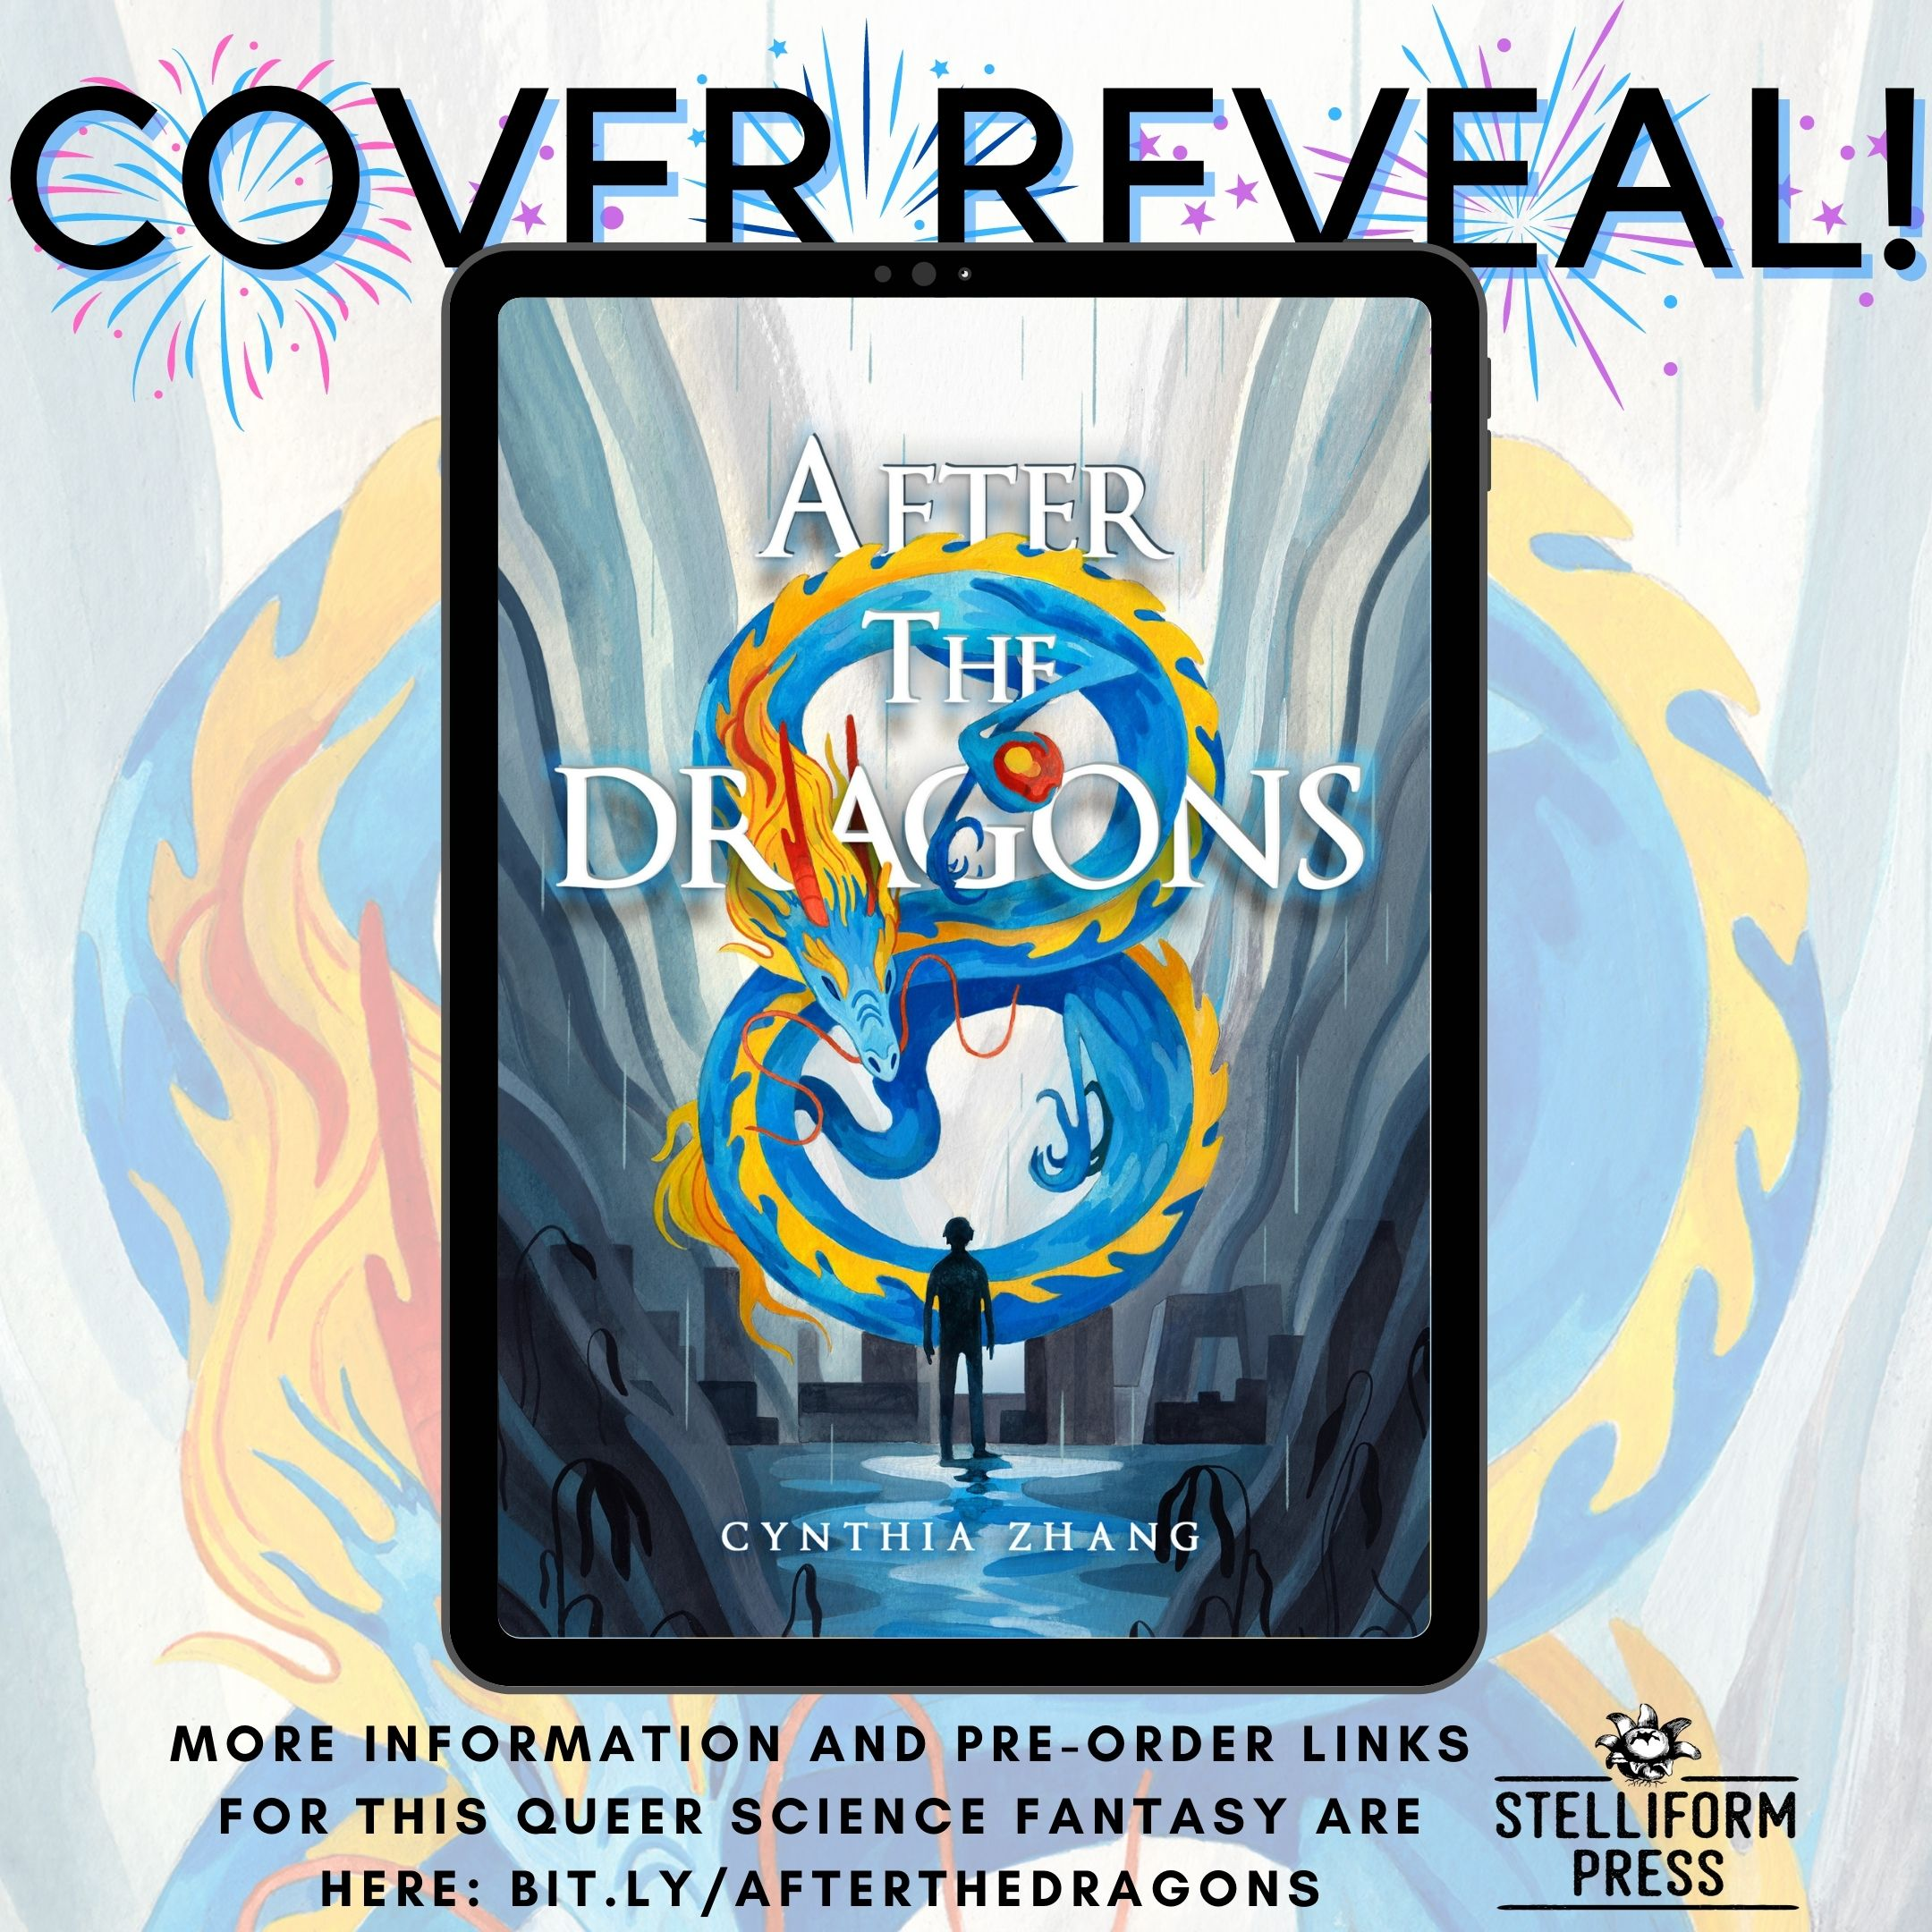 Cover Reveal Poster for Cynthia Zhang's After the Dragons